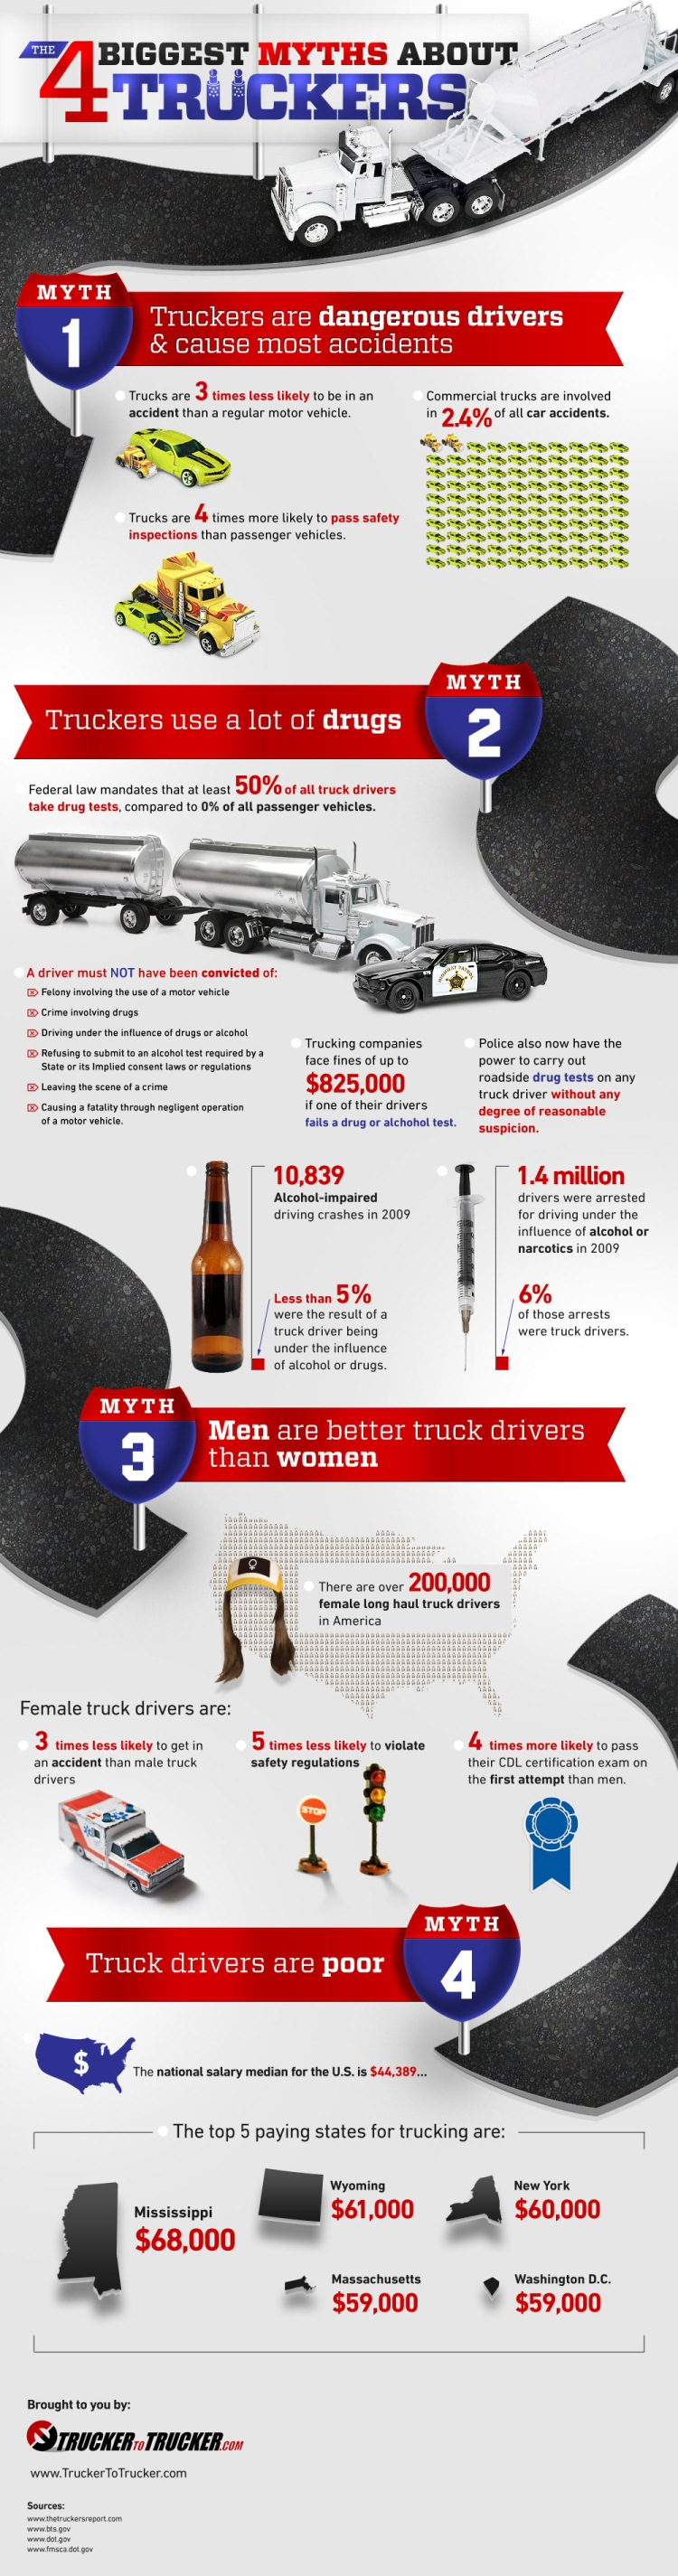 Myths About Truckers